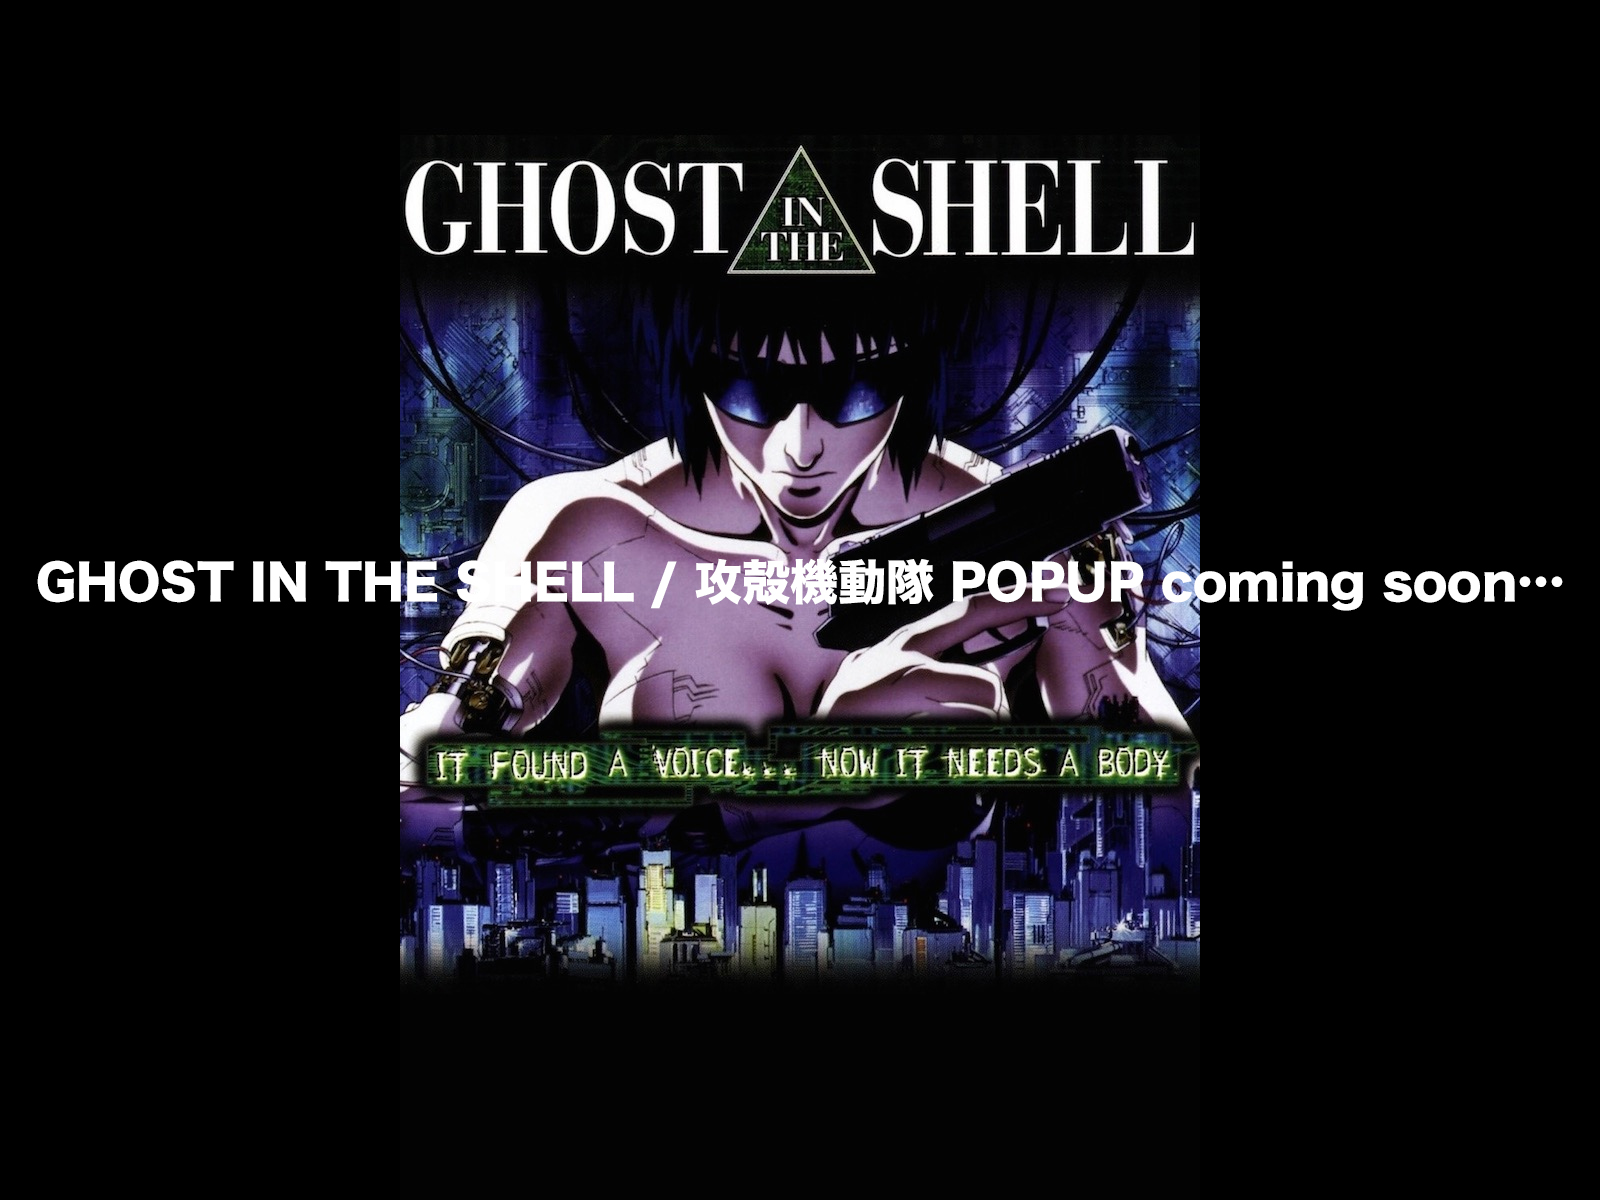 GHOST IN THE SHELL / 攻殻機動隊 POPUP coming soon…